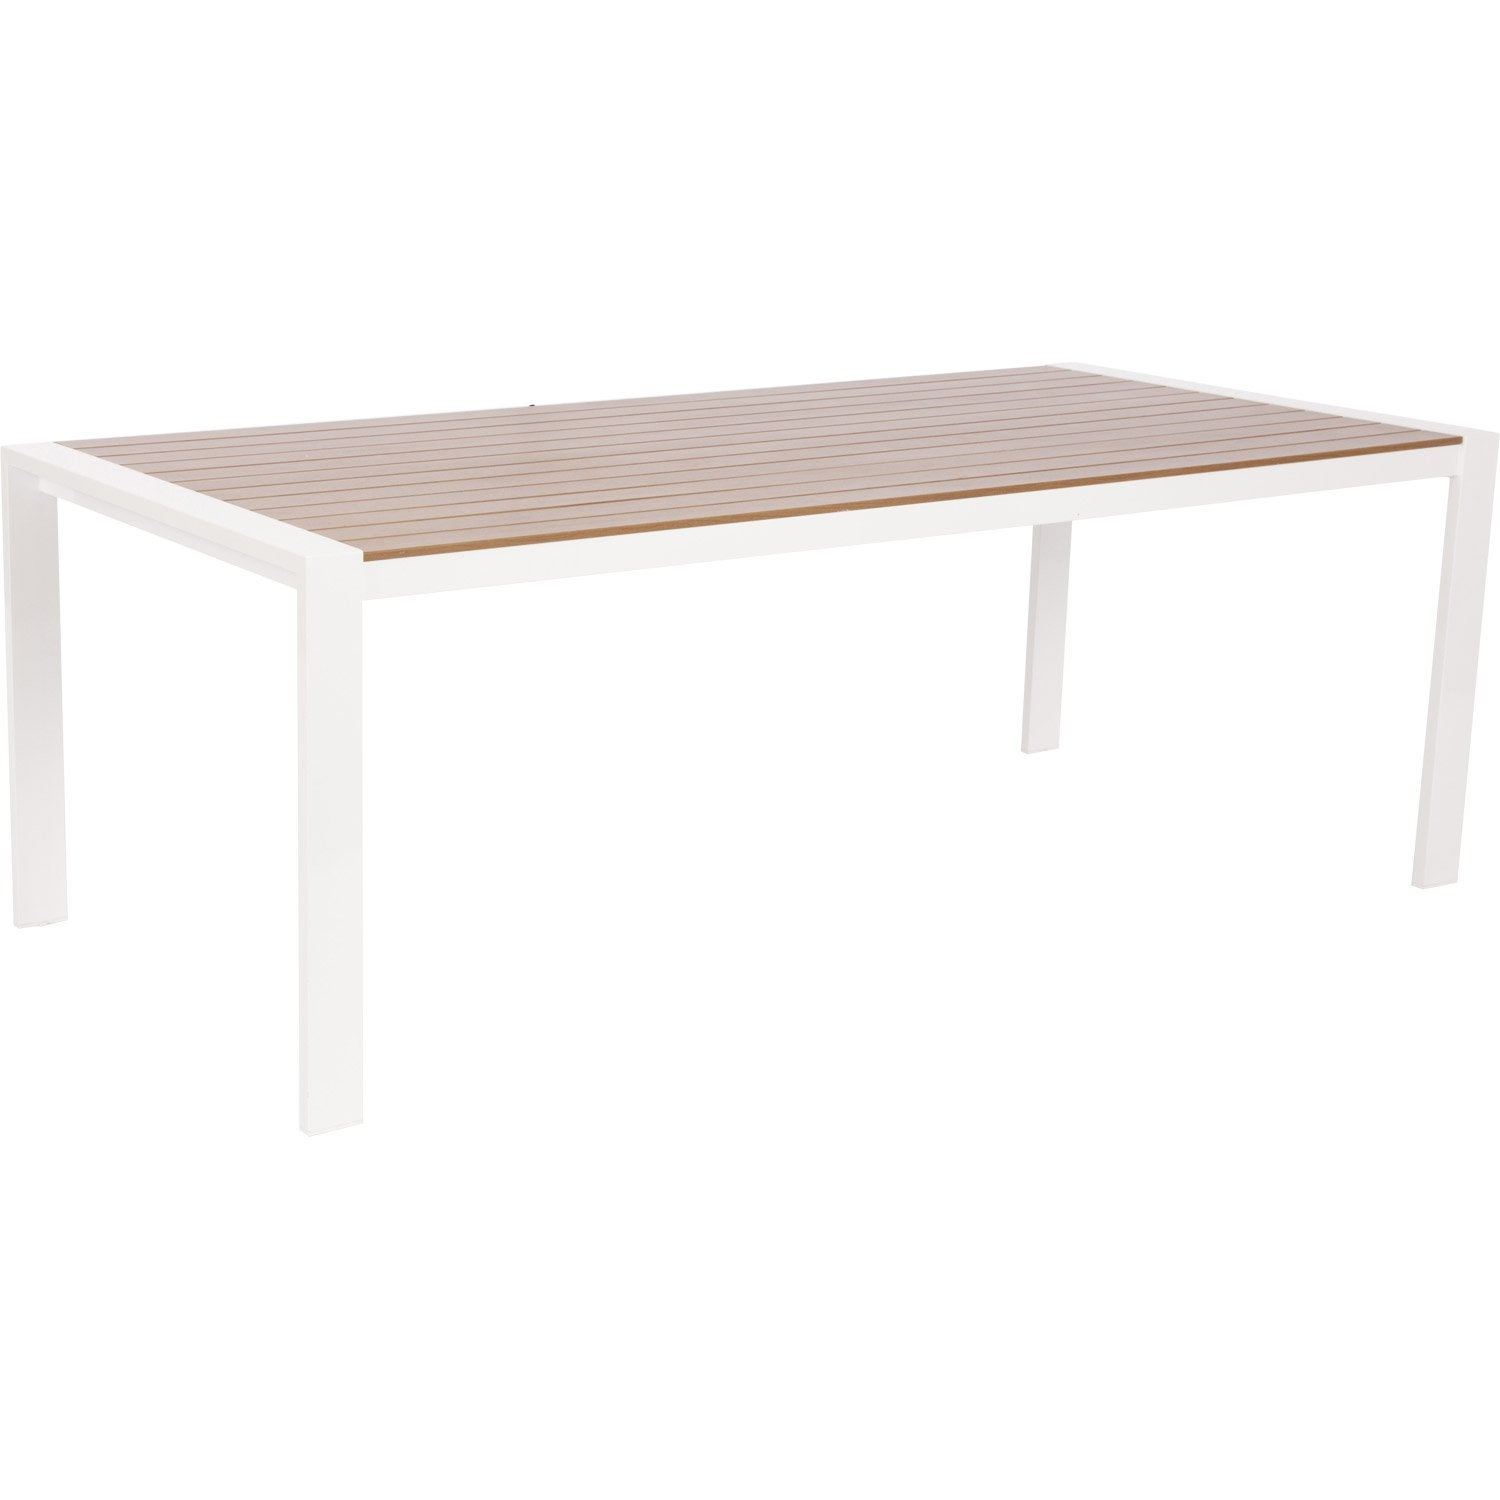 Table de jardin port nelson rectangulaire blanc for Table jardin 8 personnes